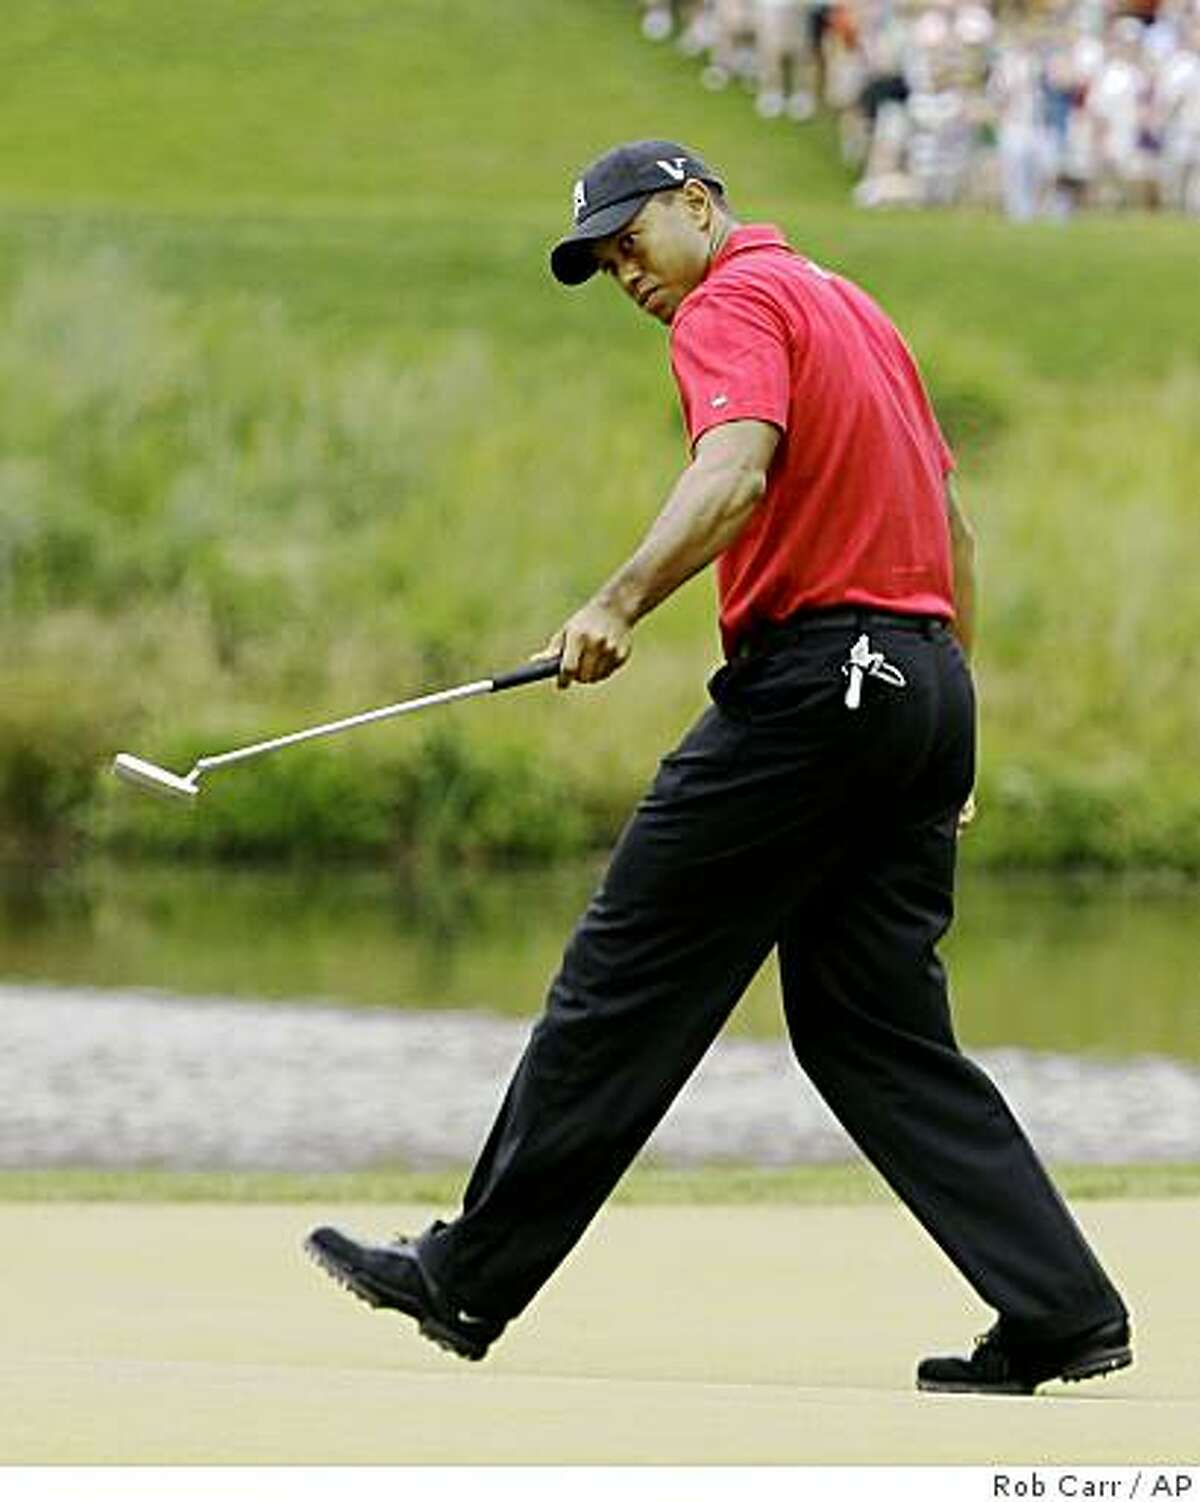 Tiger Woods watches his birdie putt roll into the hole on the 10th hole during the final round of the AT&T National golf tournament at Congressional Country Club, Sunday, July 5, 2009, in Bethesda, Md. (AP Photo/Rob Carr)